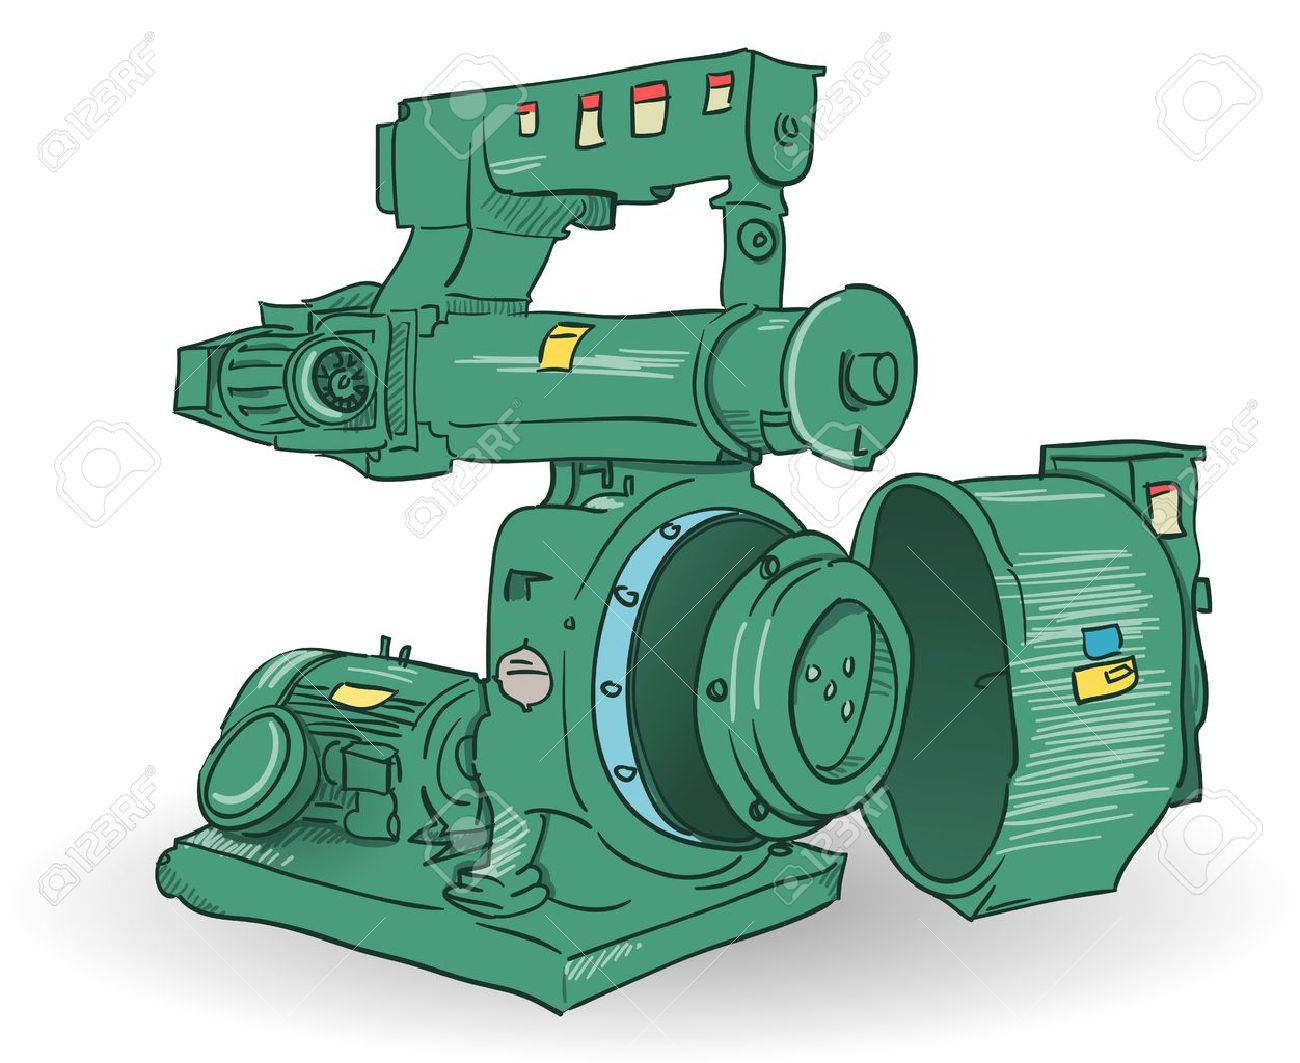 Industrial Machine Illustration Royalty Free Cliparts, Vectors ...